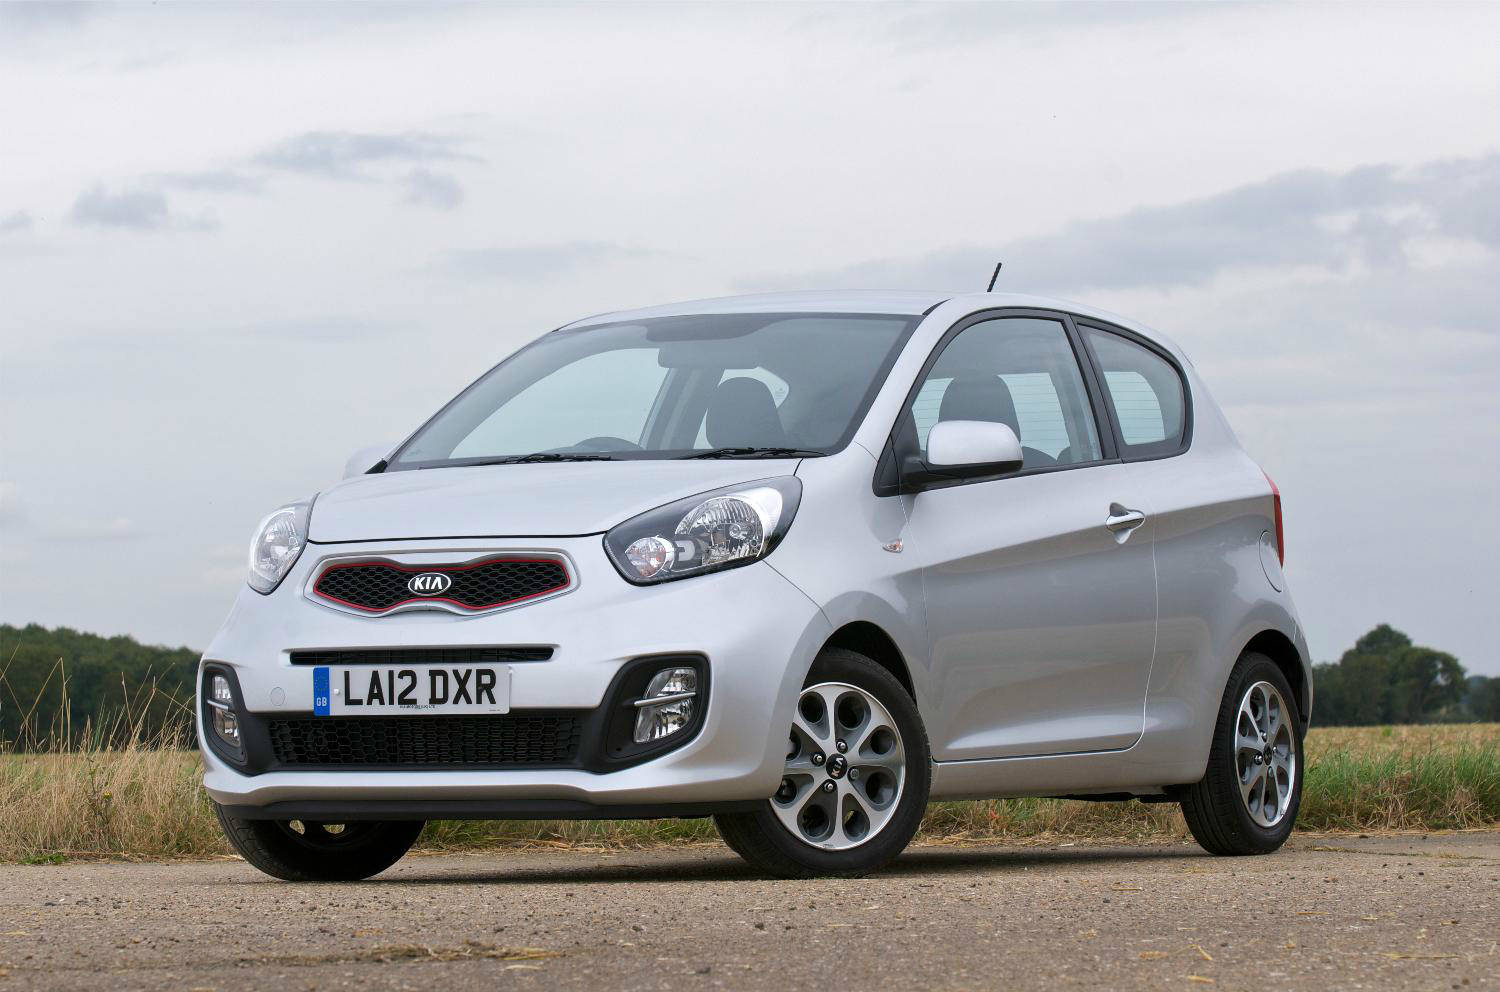 Best City Cars: The Best Small City Cars For £5000